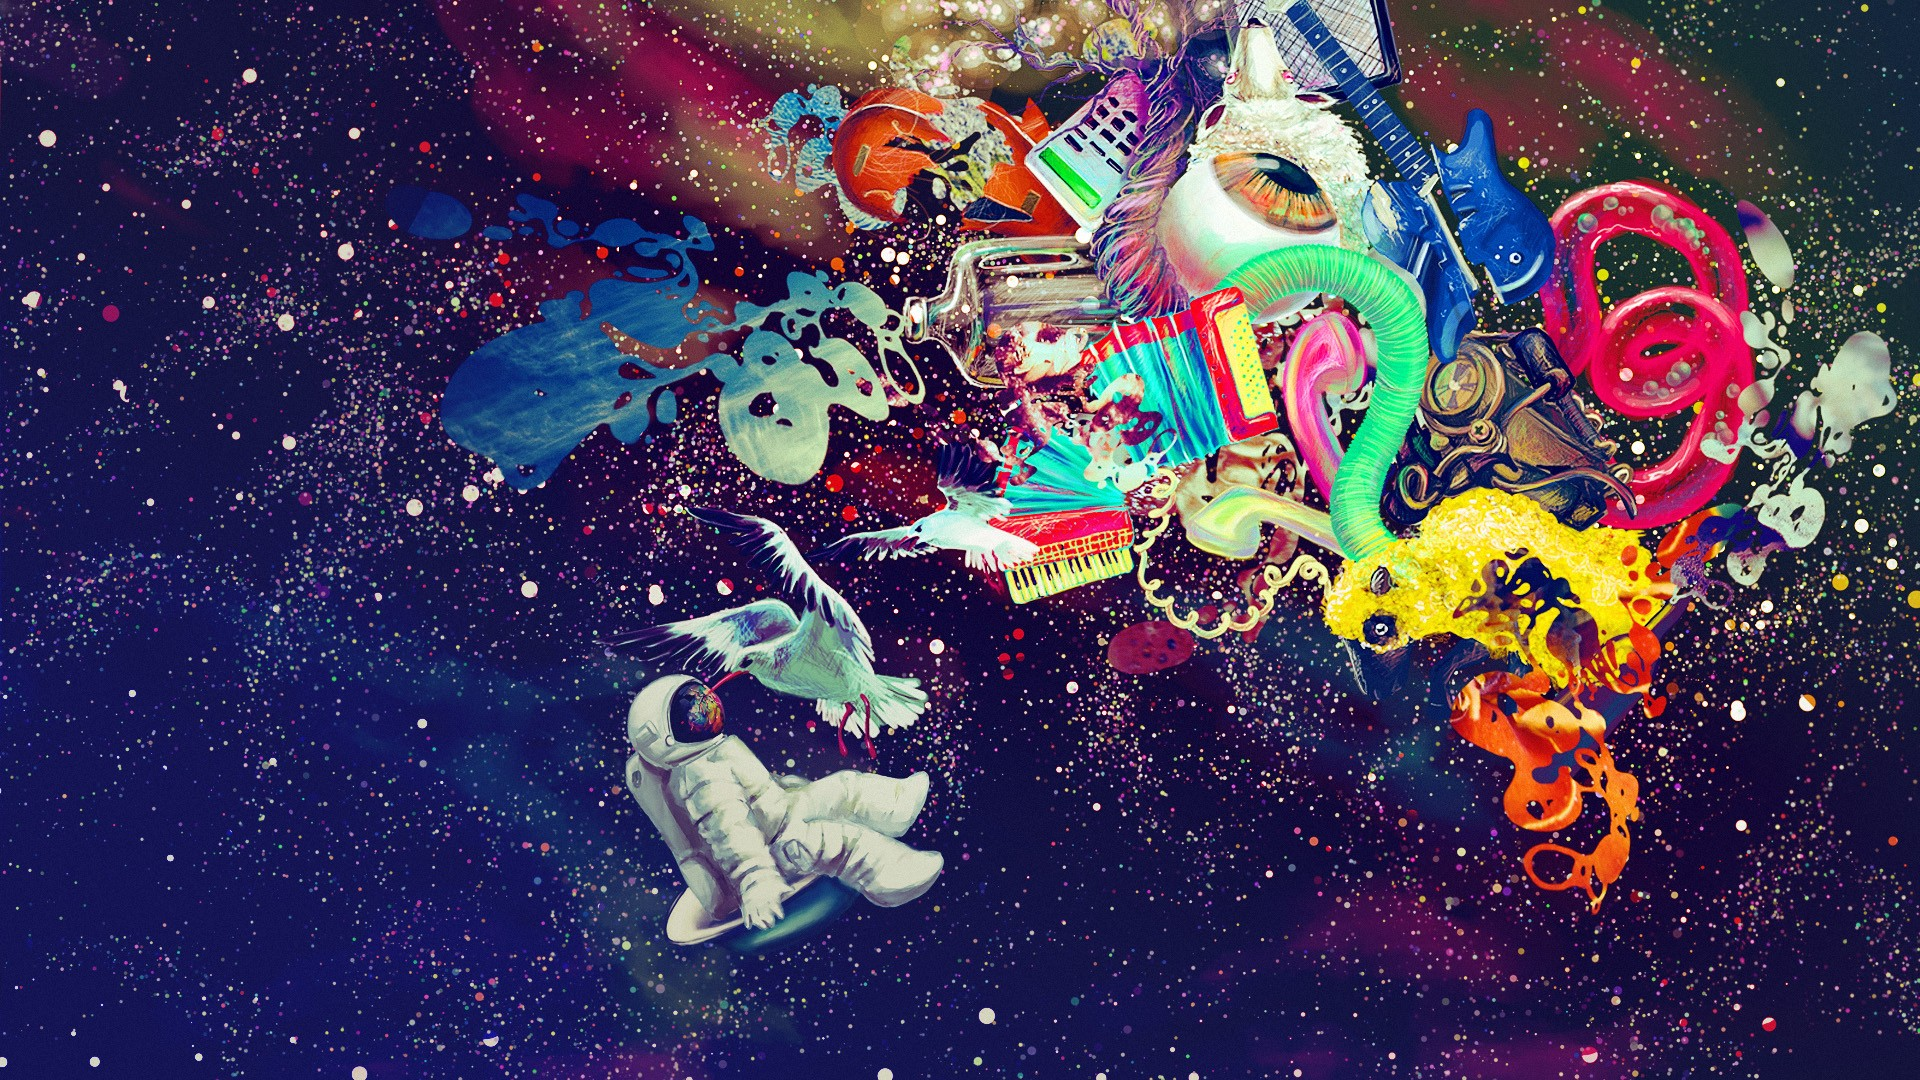 astronaut trippy weed wallpaper - photo #10